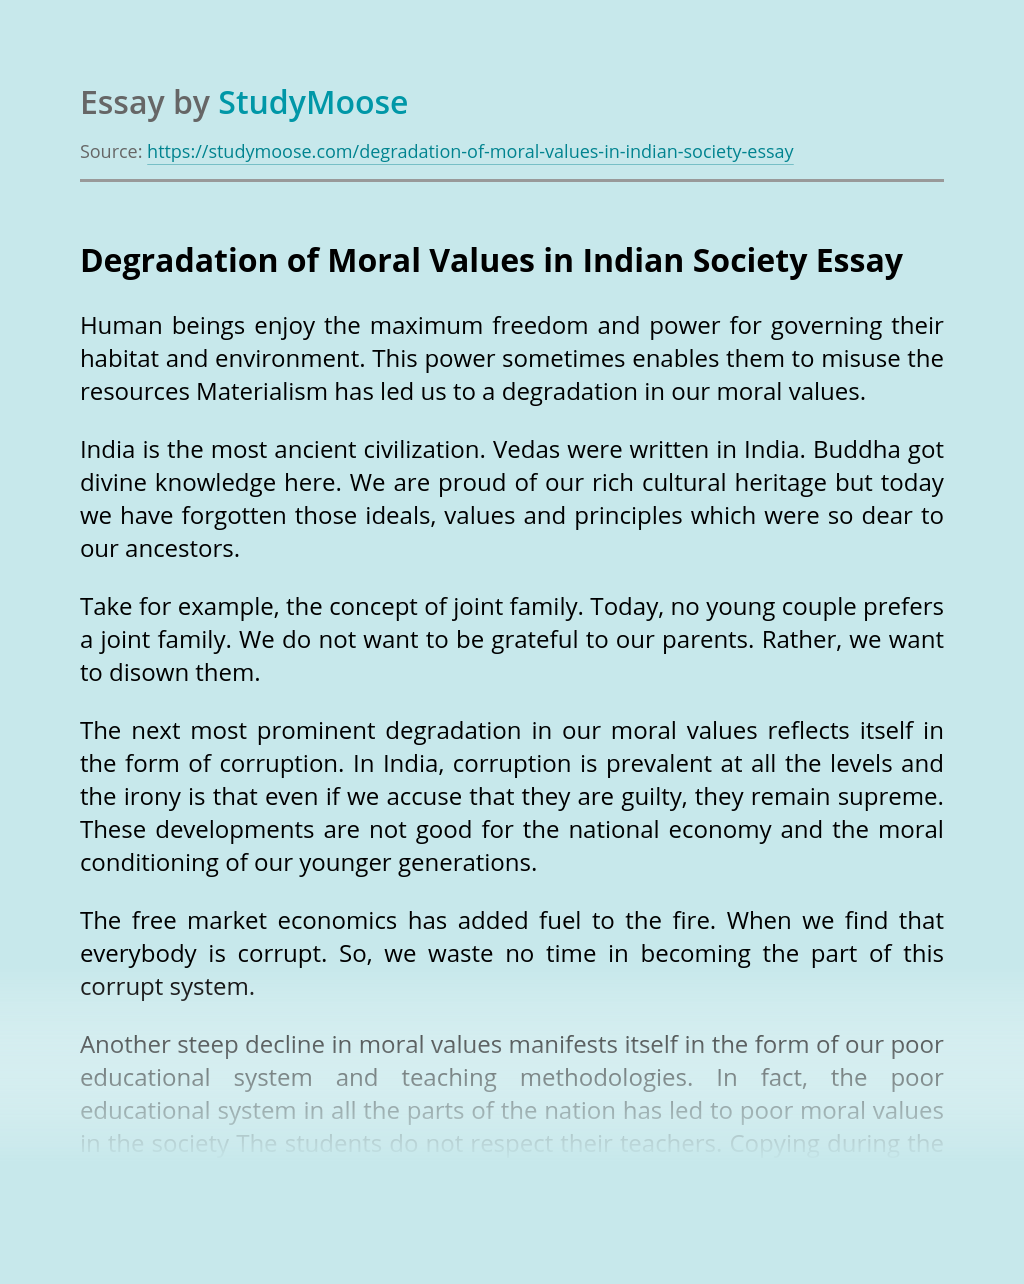 Degradation of Moral Values in Indian Society